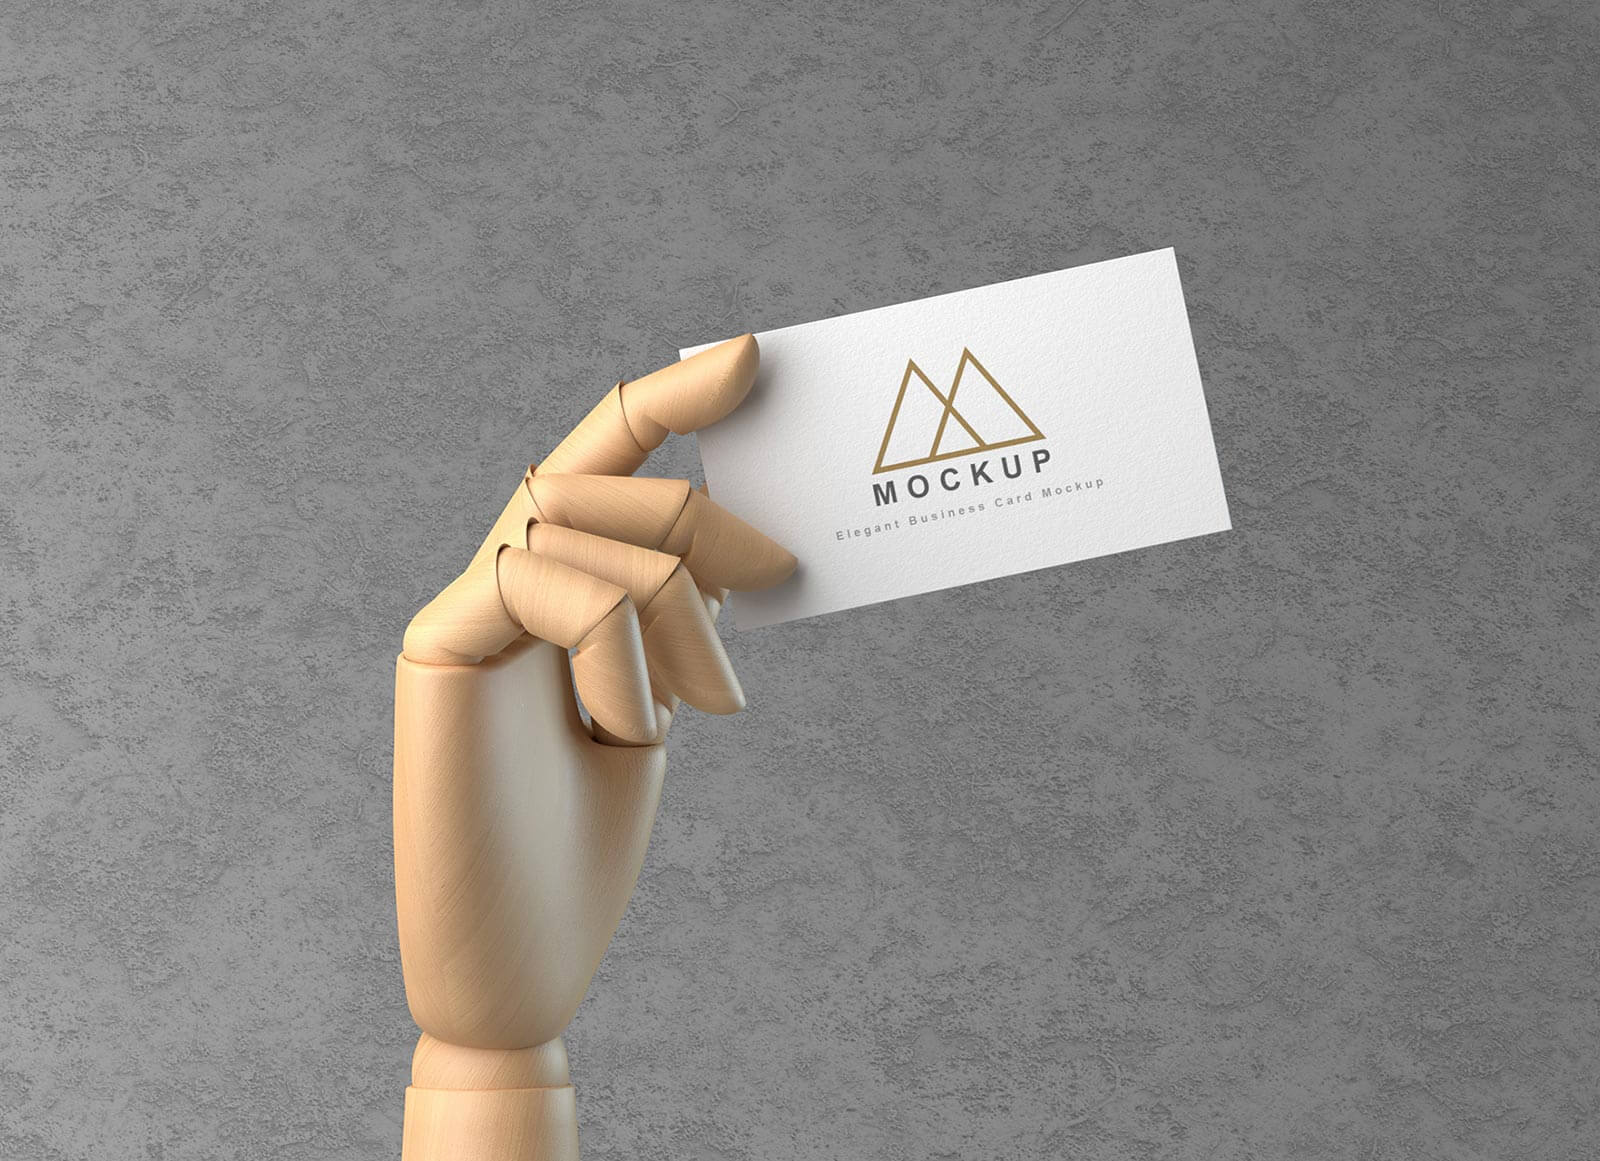 Free-Wooden-Hand-Holding-Business-Card-Mockup-PSD